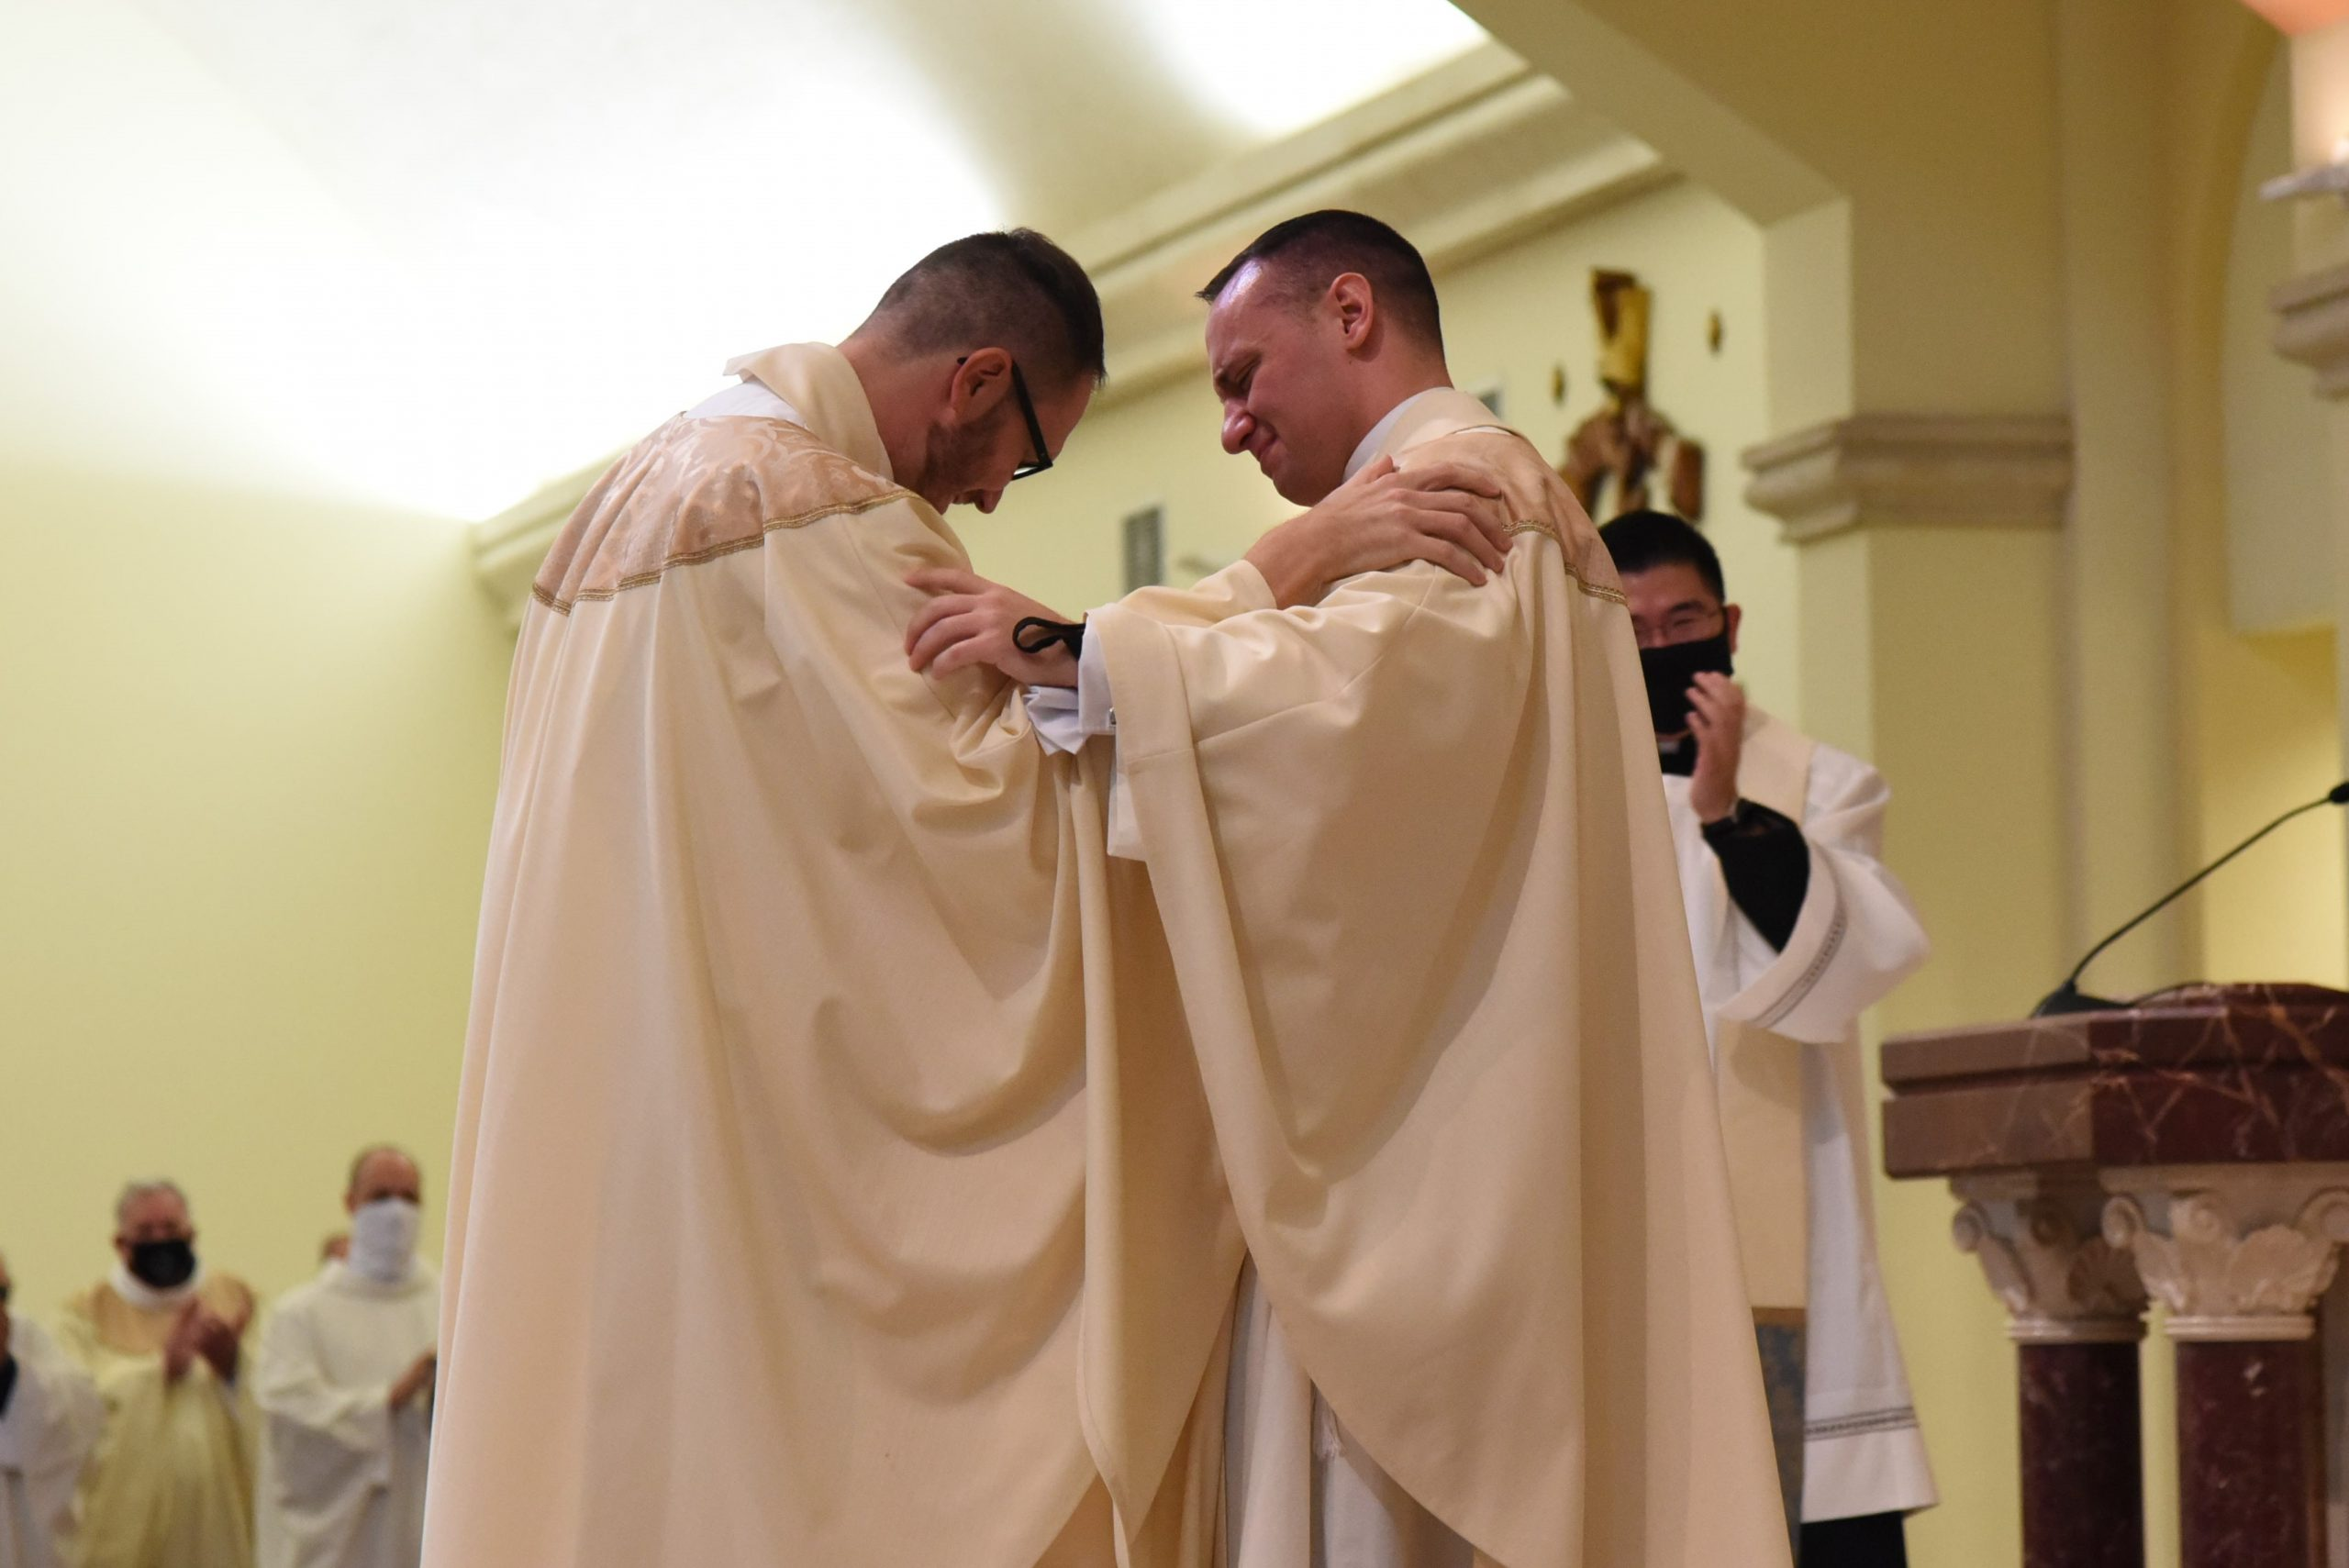 Two men, eager and ready, are Ordained to the Priesthood